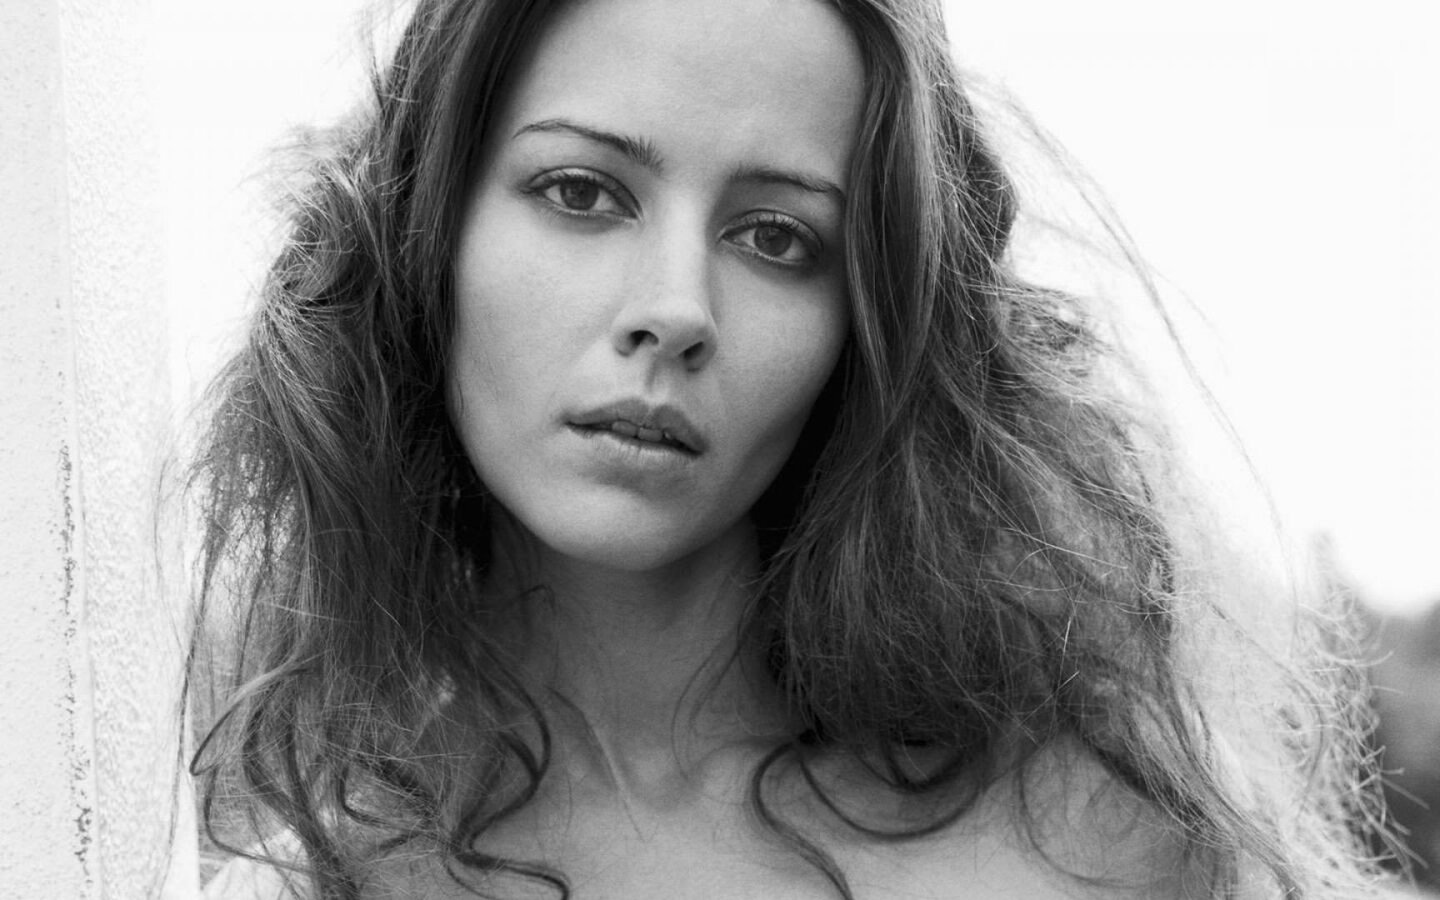 amy-acker-hairs-pic.jpg